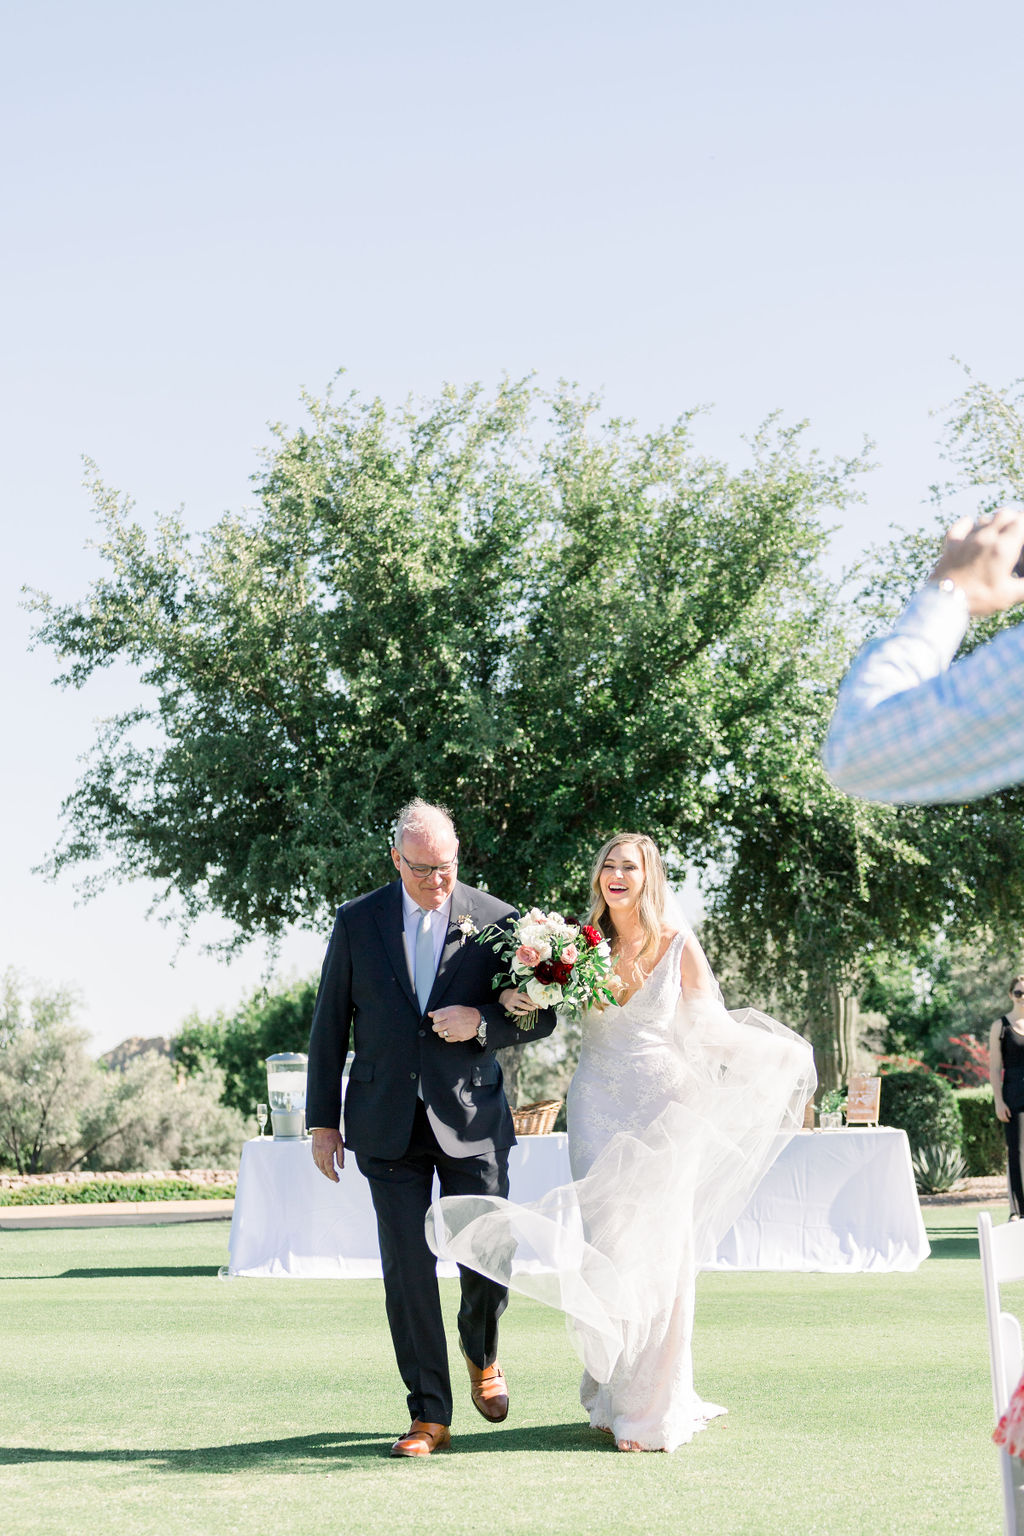 Superstition Mountain Destination Wedding - Arizona Wedding Florist - Phoenix, Scottsdale, Sedona - Bride Walking Down the Aisle